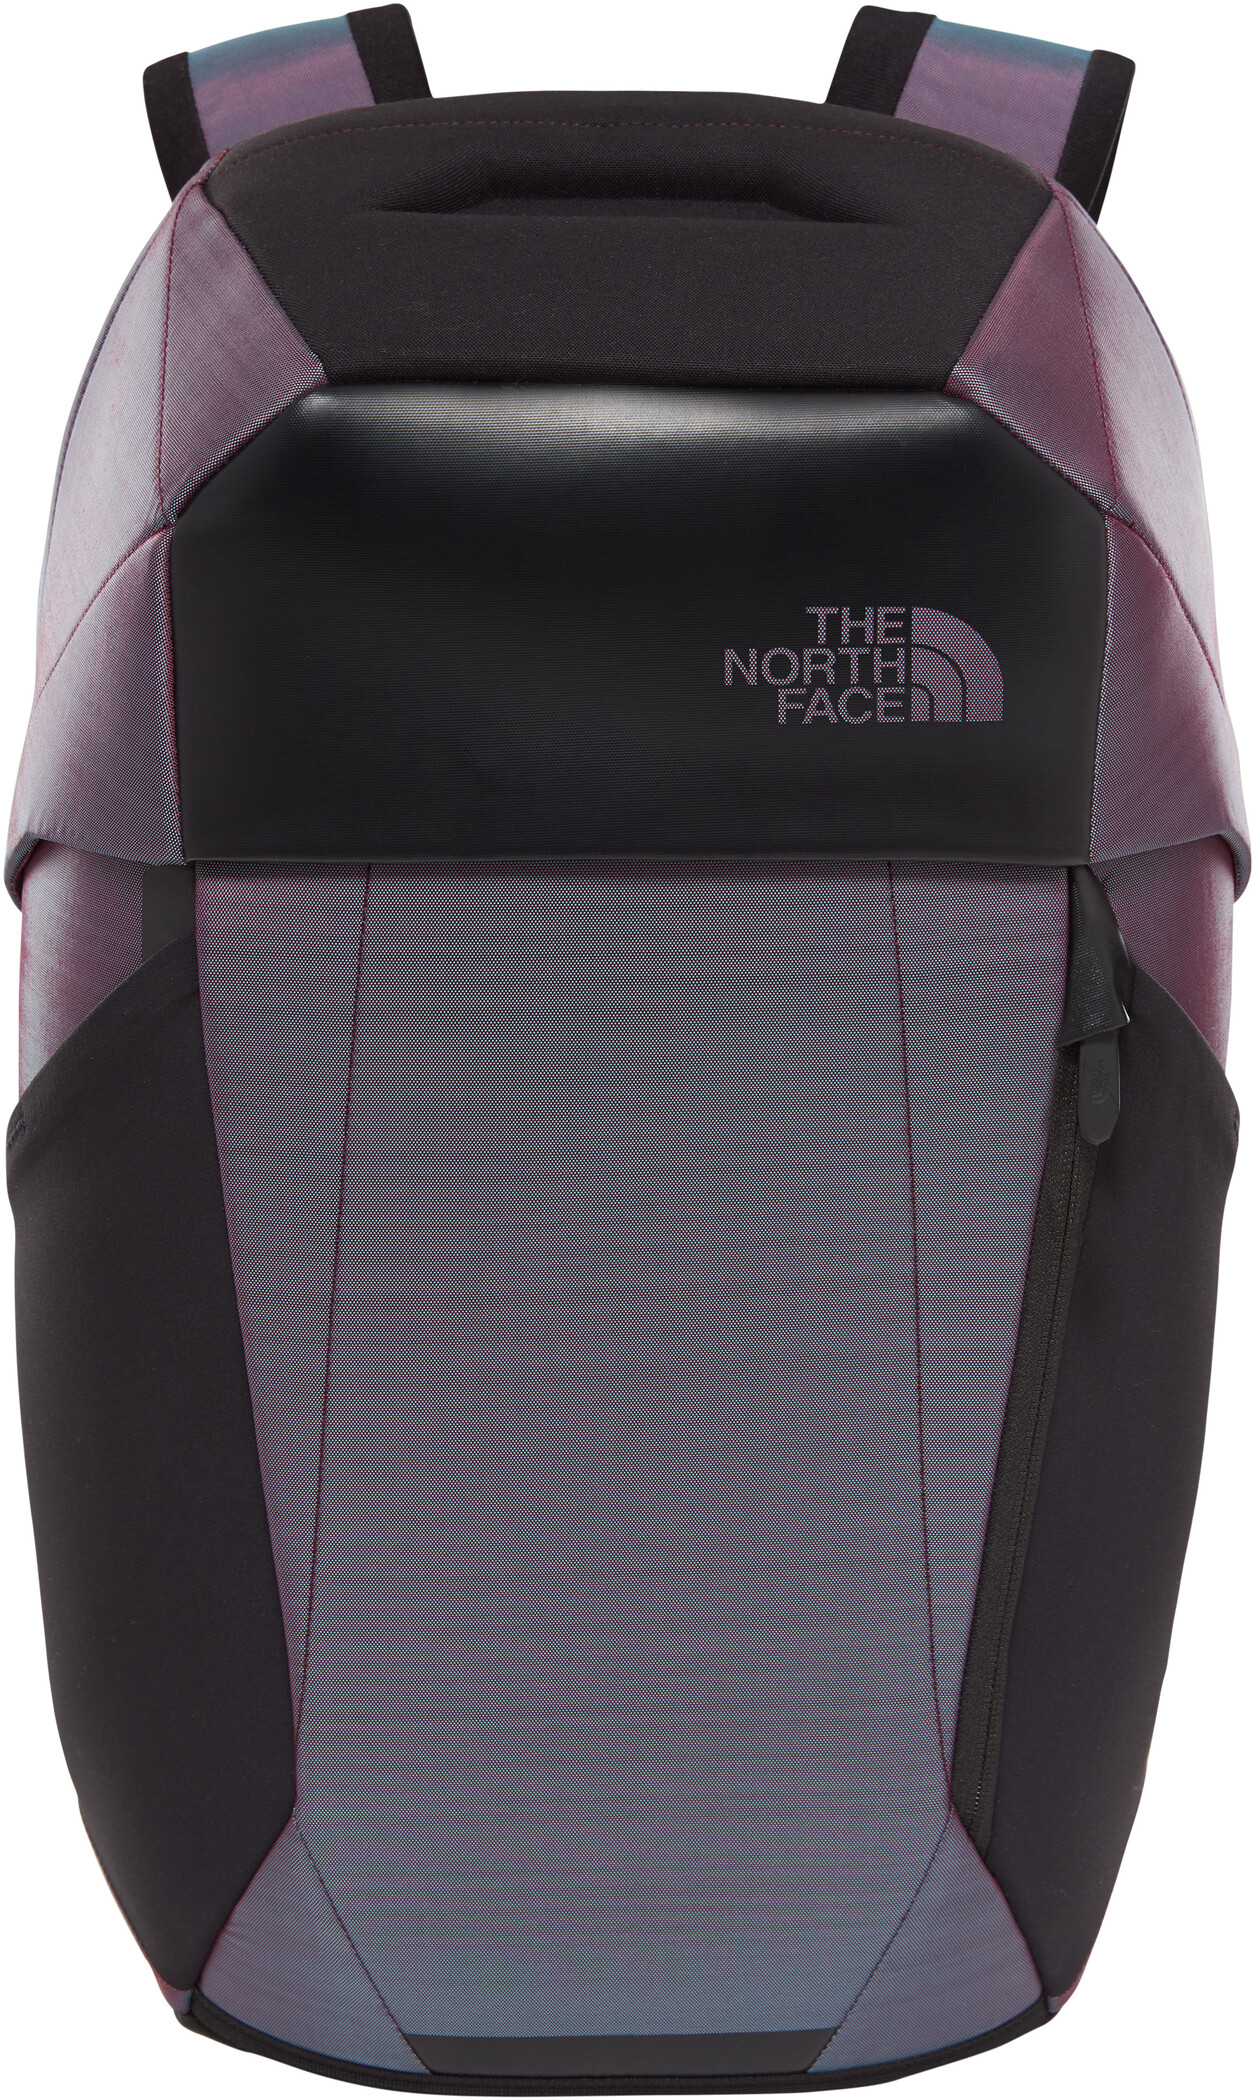 The North Face Access O2 Rygsæk, iridescent purple/galaxy purple | Travel bags